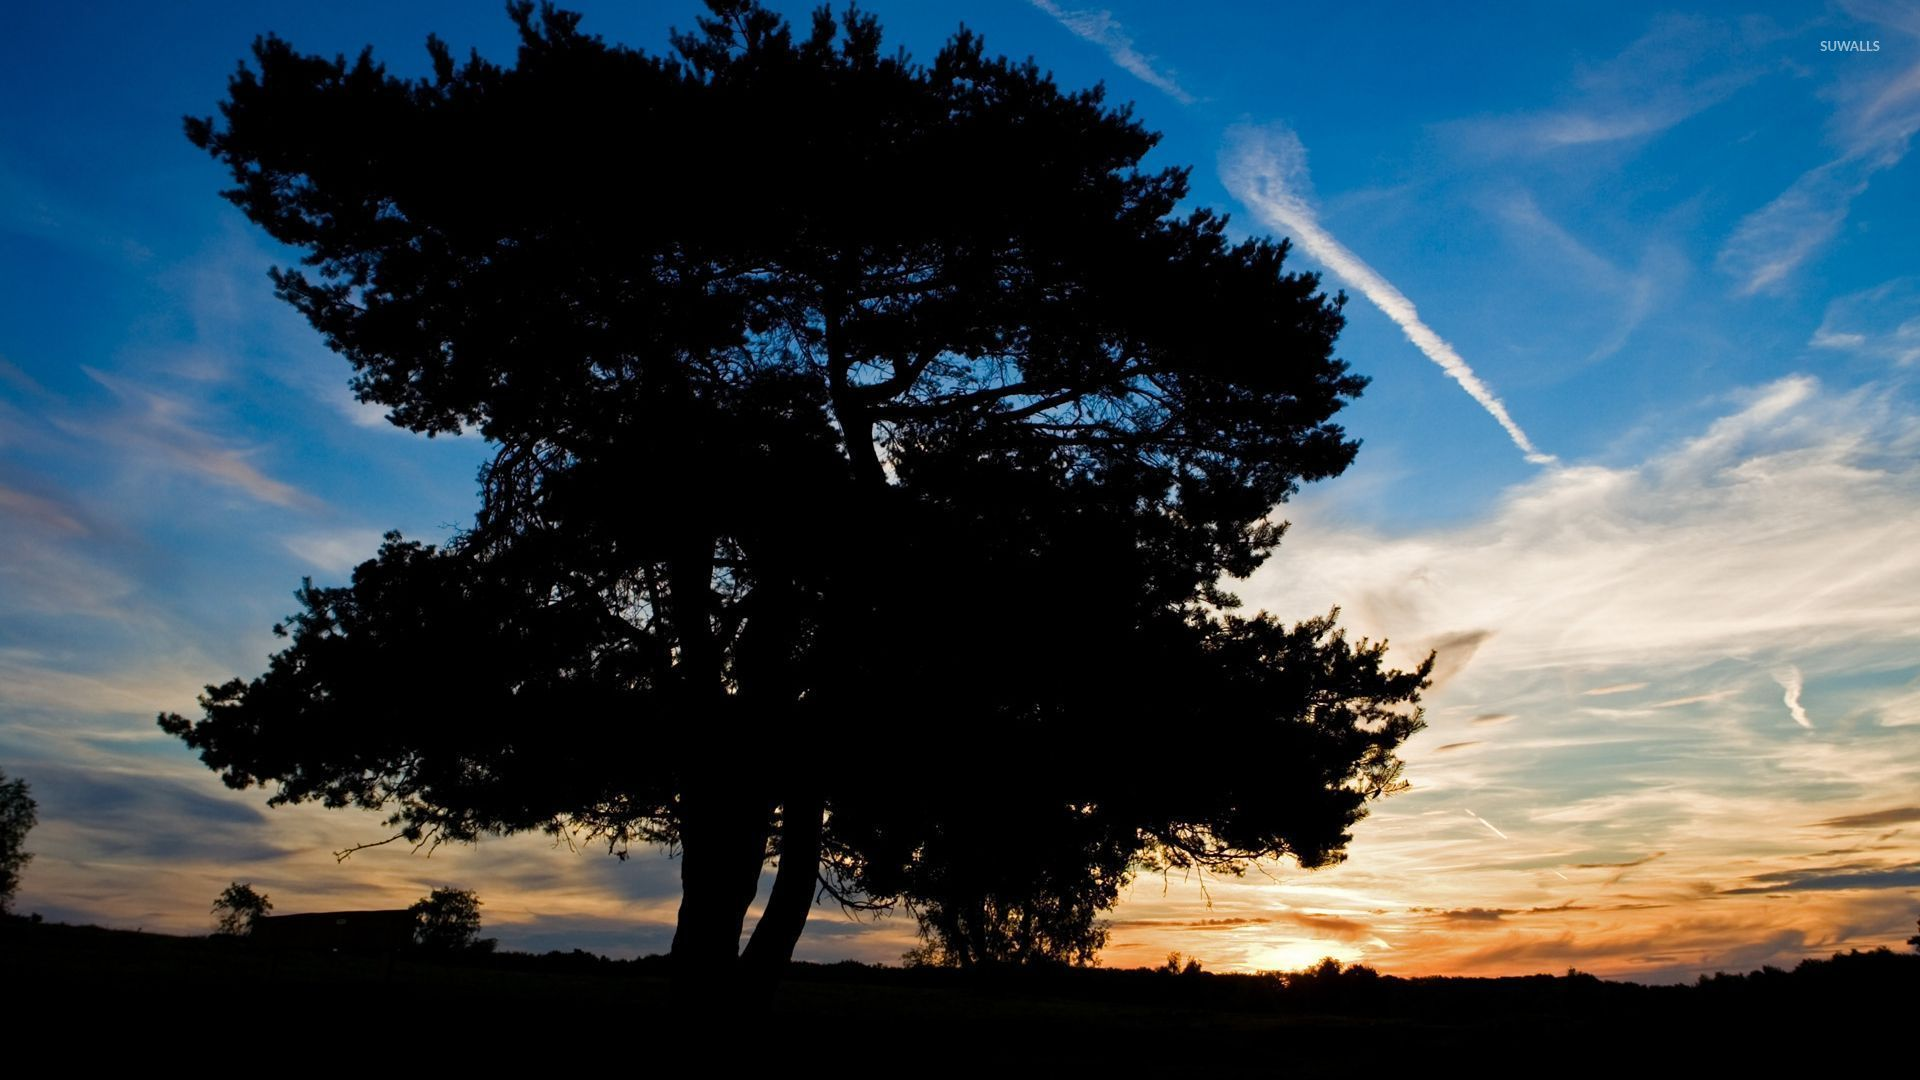 Amazing Sunset Sky Behind The Big Tree Wallpaper Nature